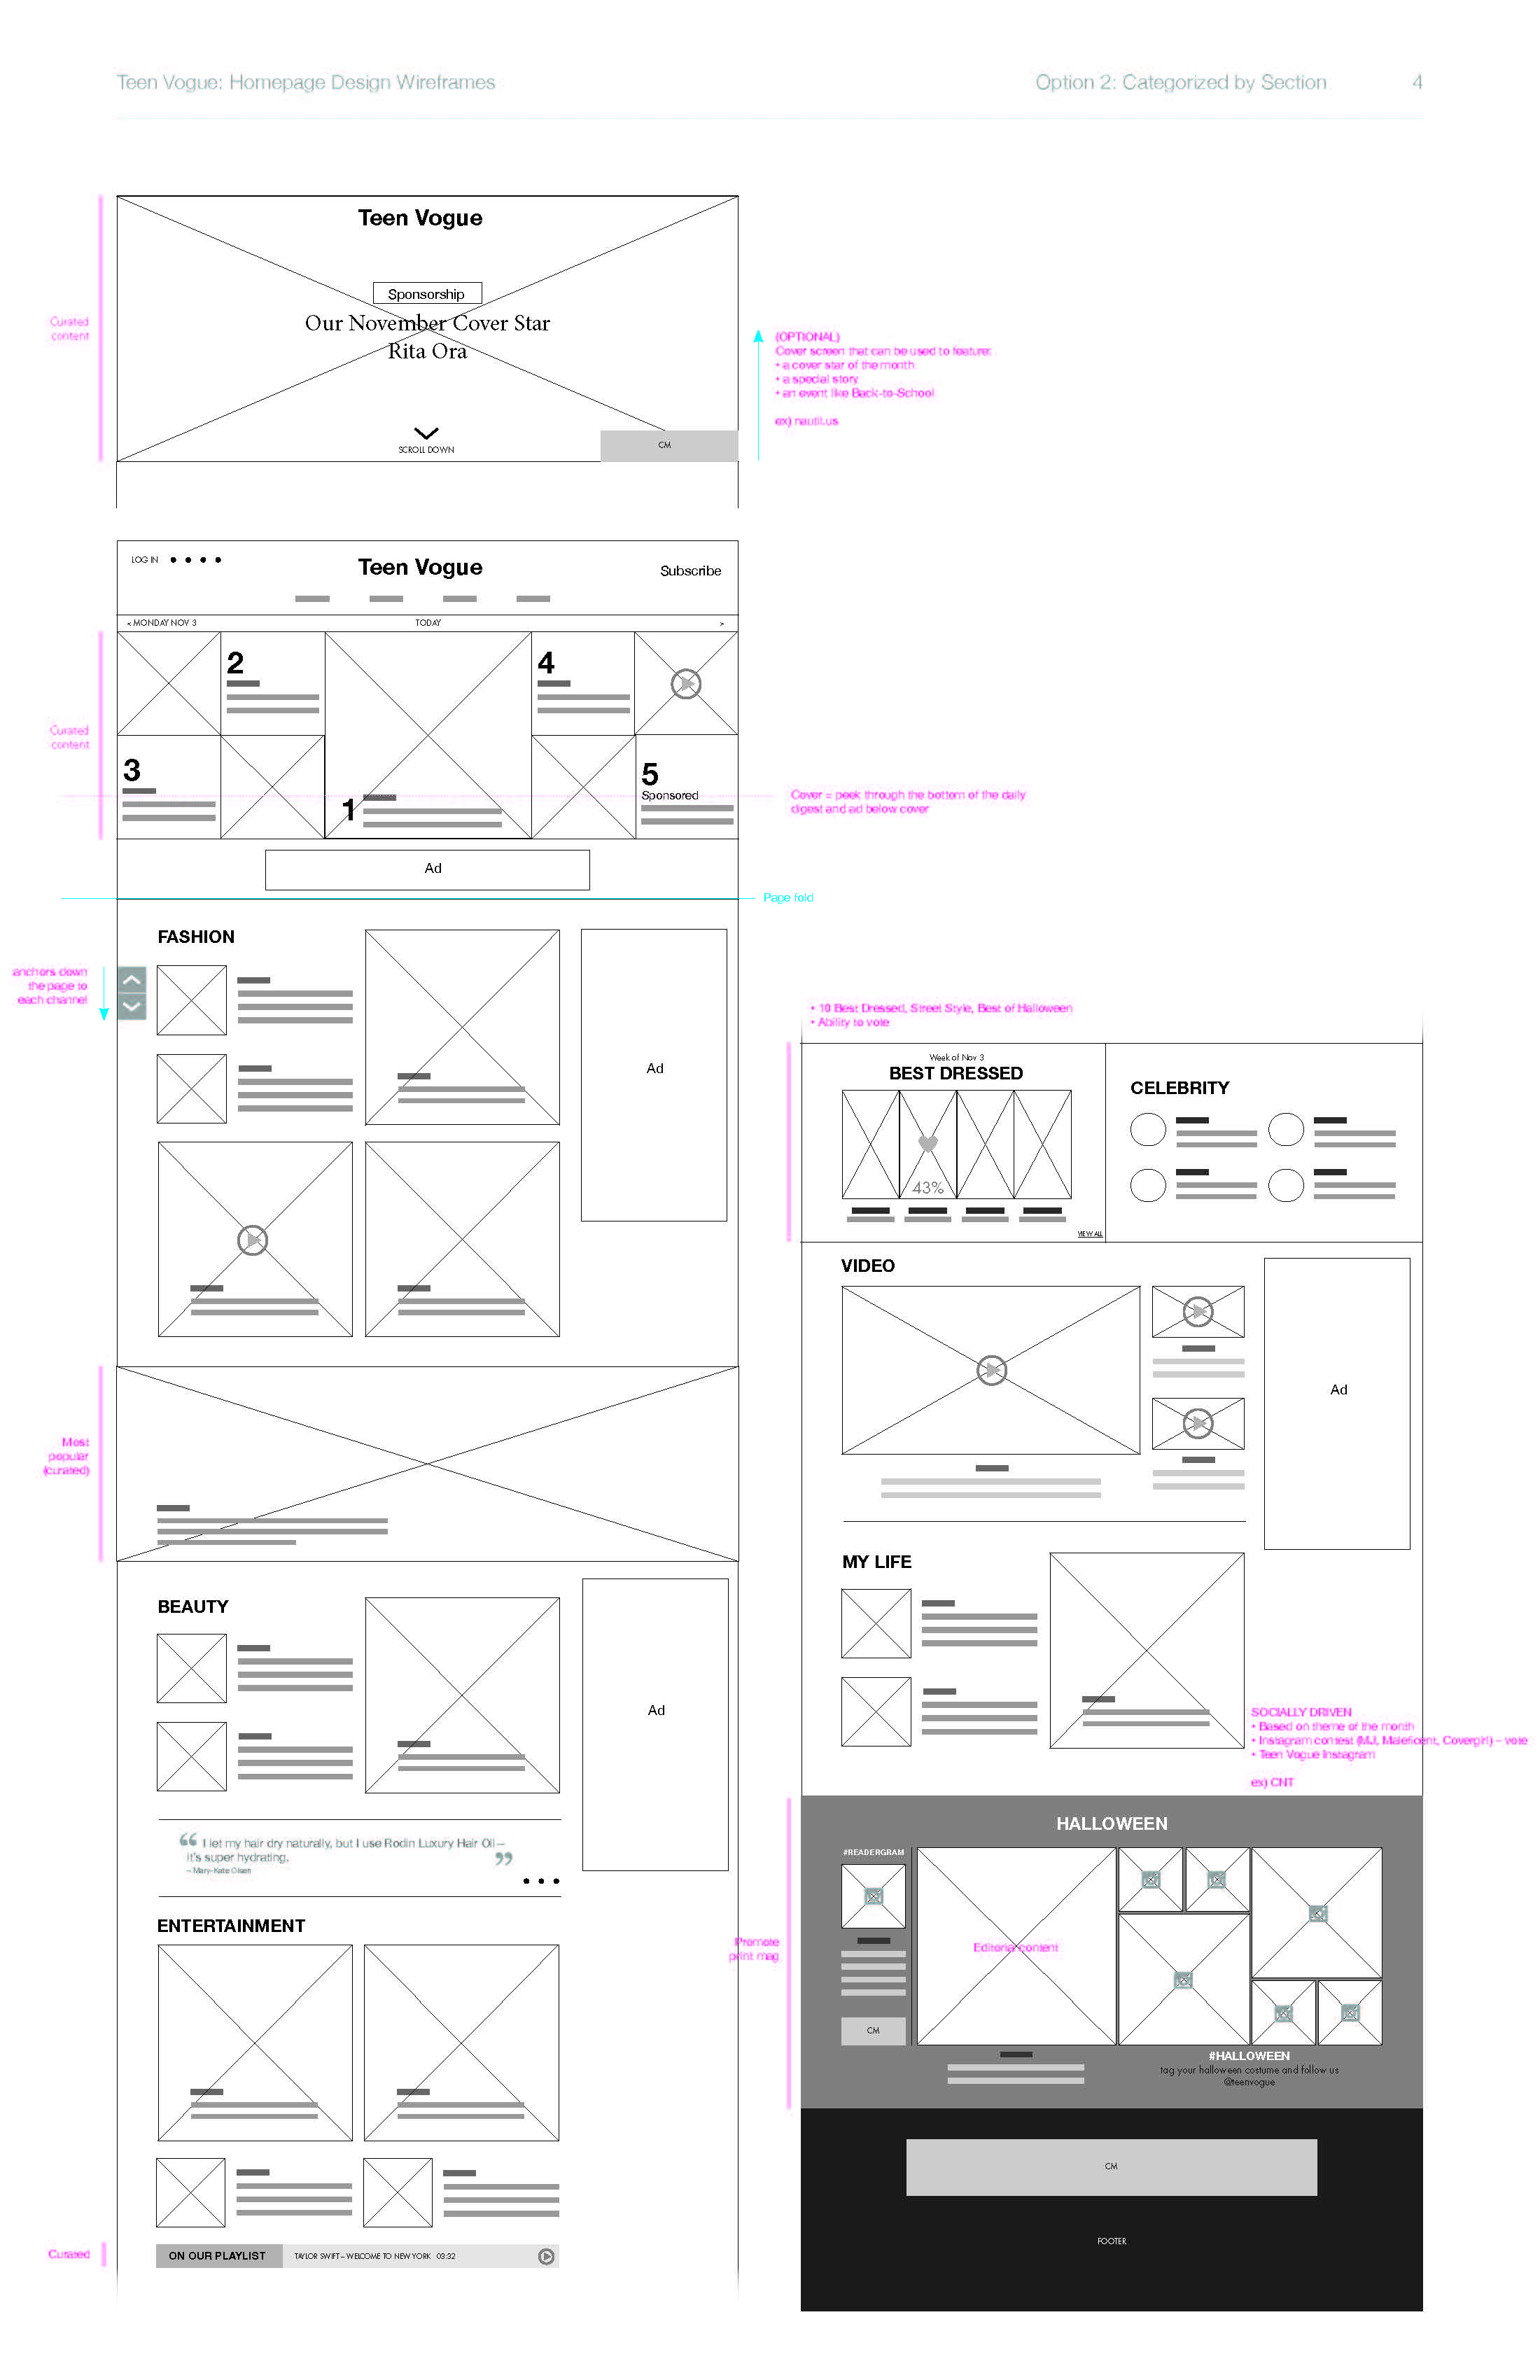 TV_Homepage_Wireframes_110314_Page_4.jpg